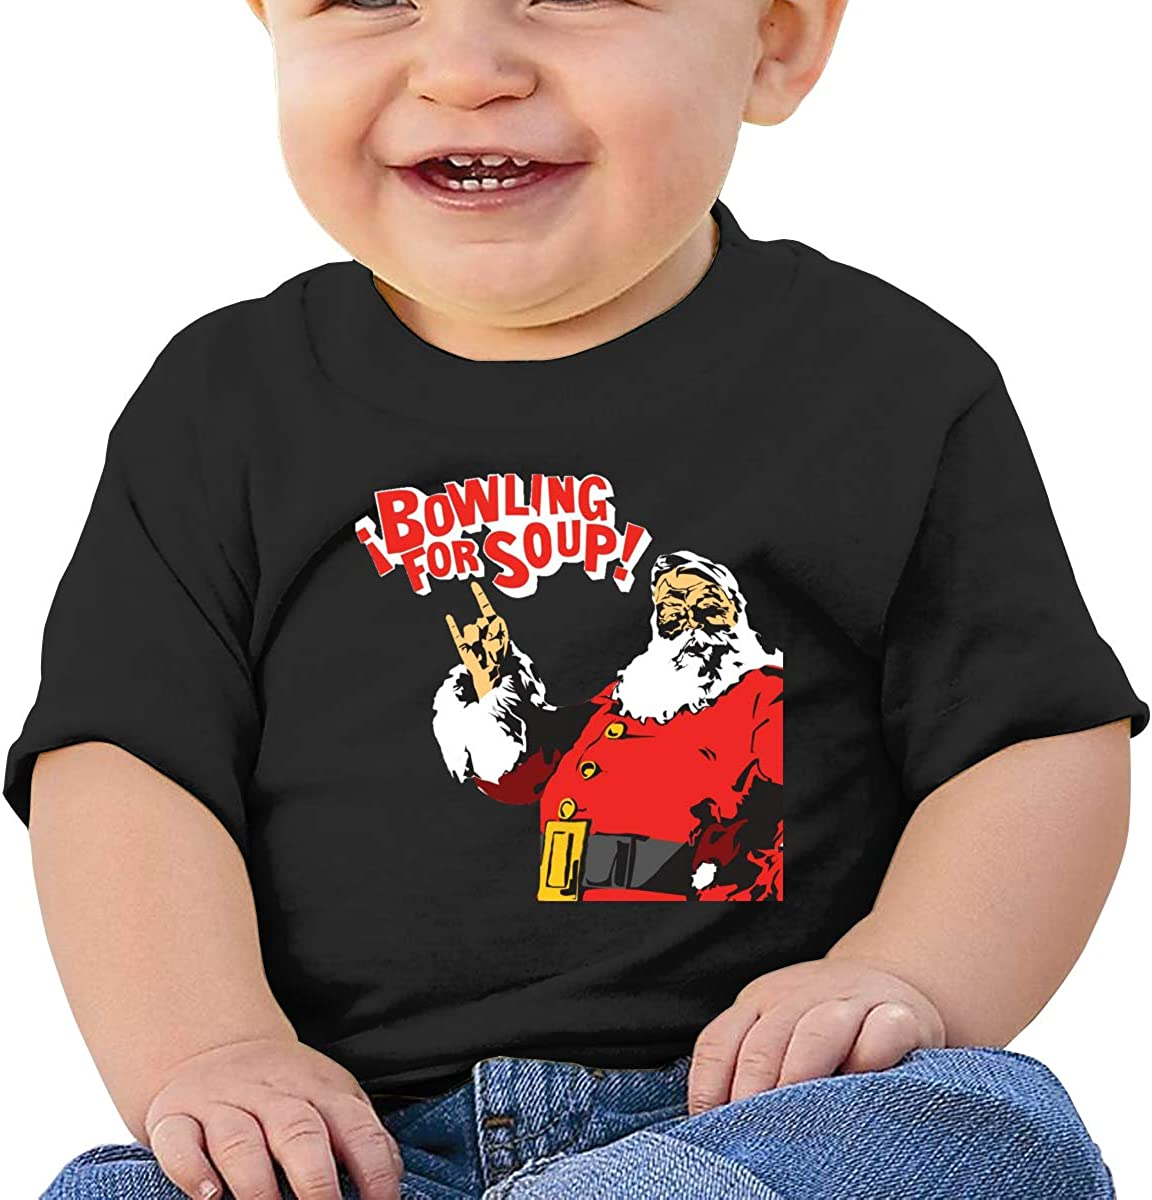 Wokeyia Baby Bowling for Soup Merry Christmas Black Tshirts Breathable T-Shirt for Infant